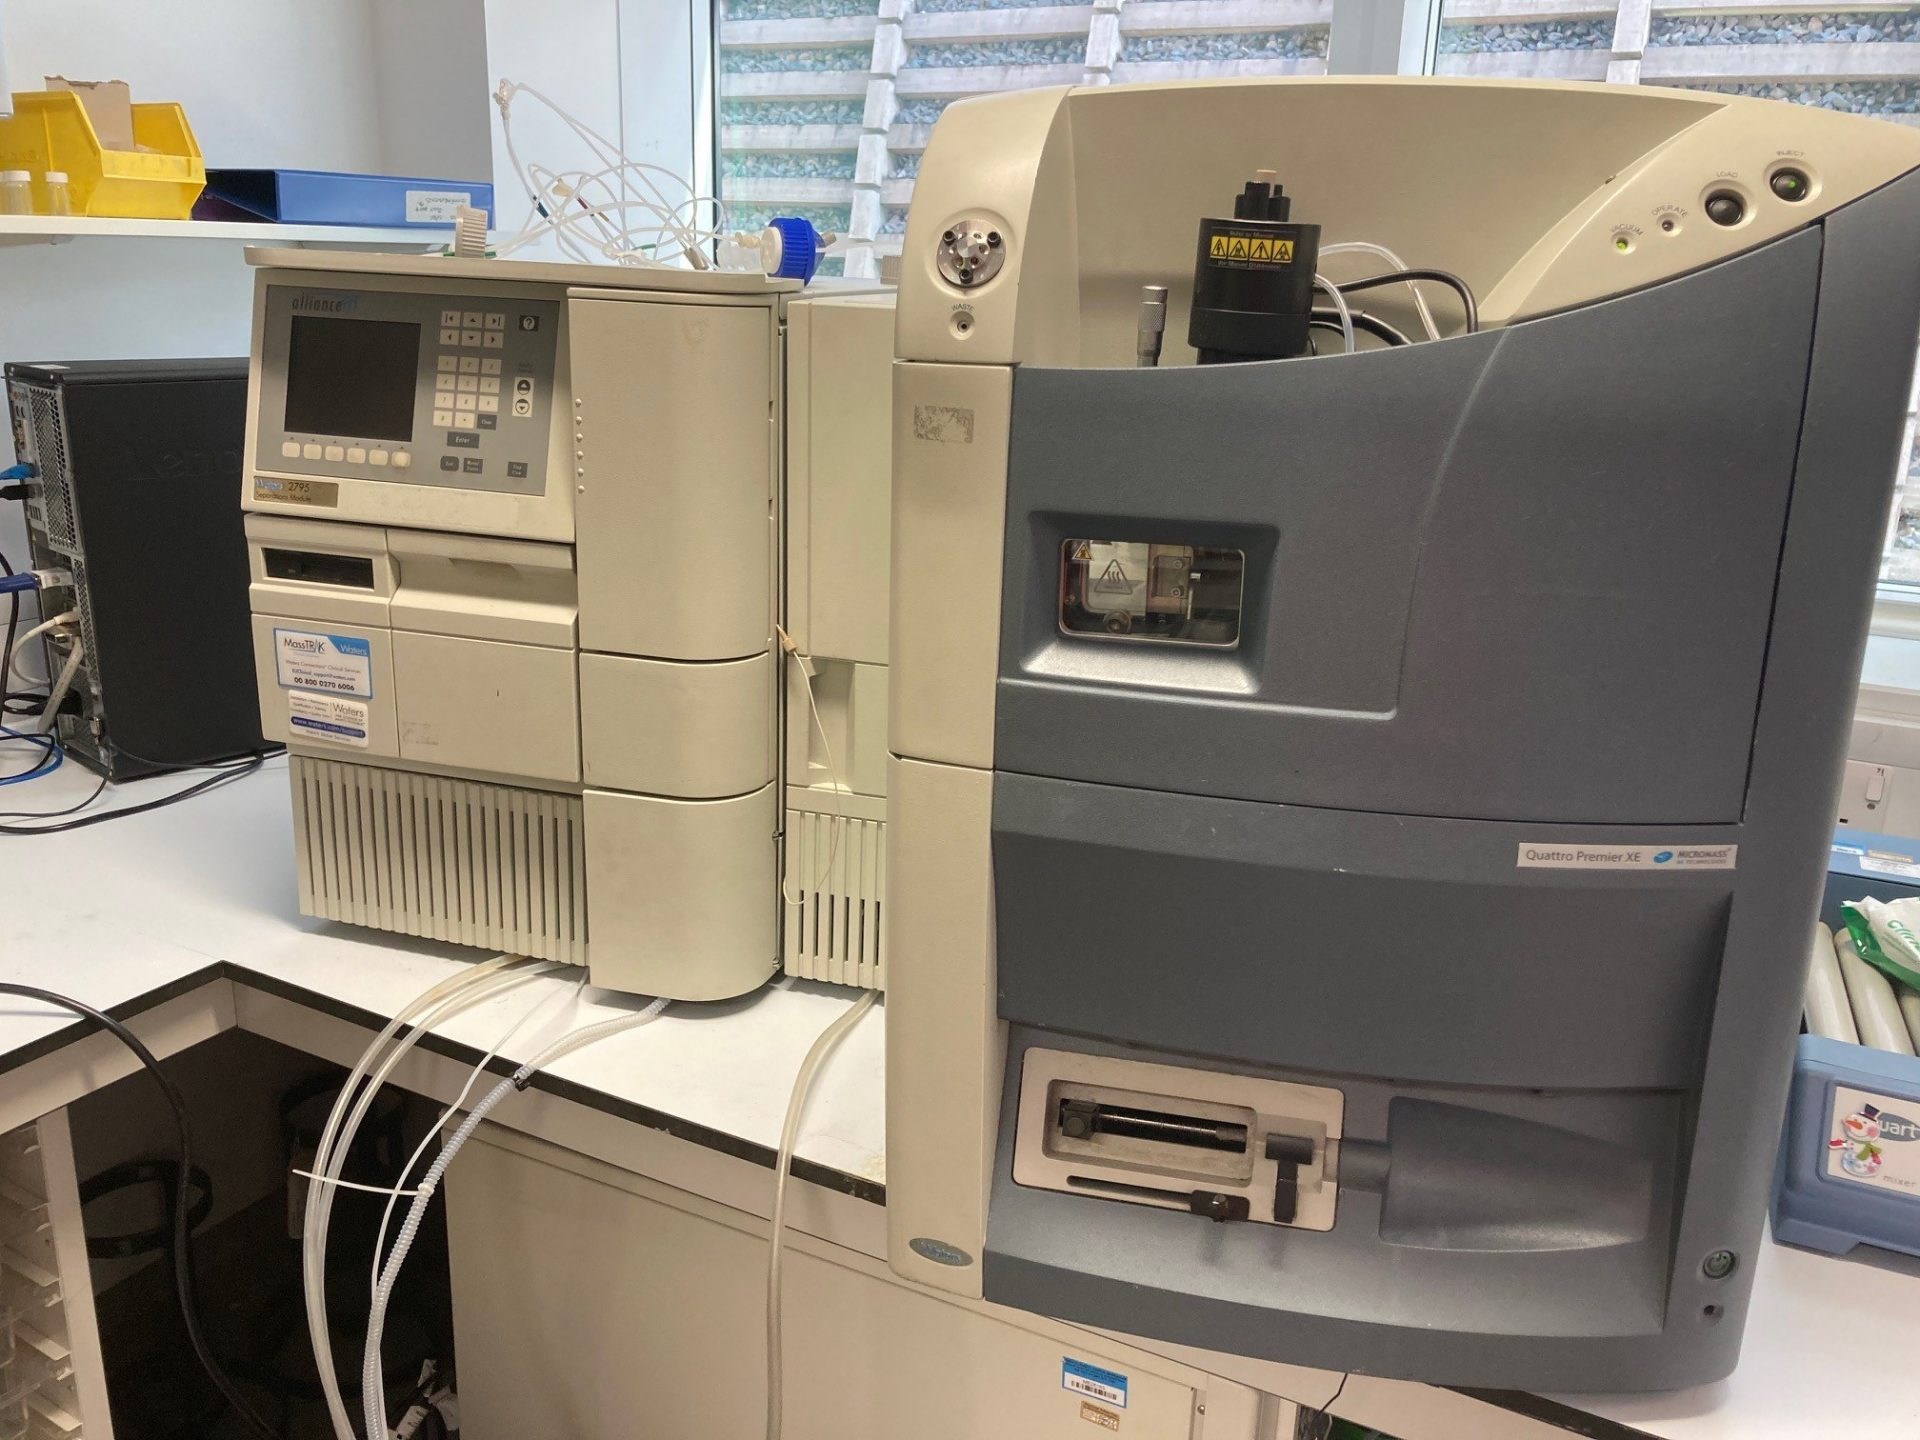 Waters Premier Quattro XE - LCMS and 2795 HPLC